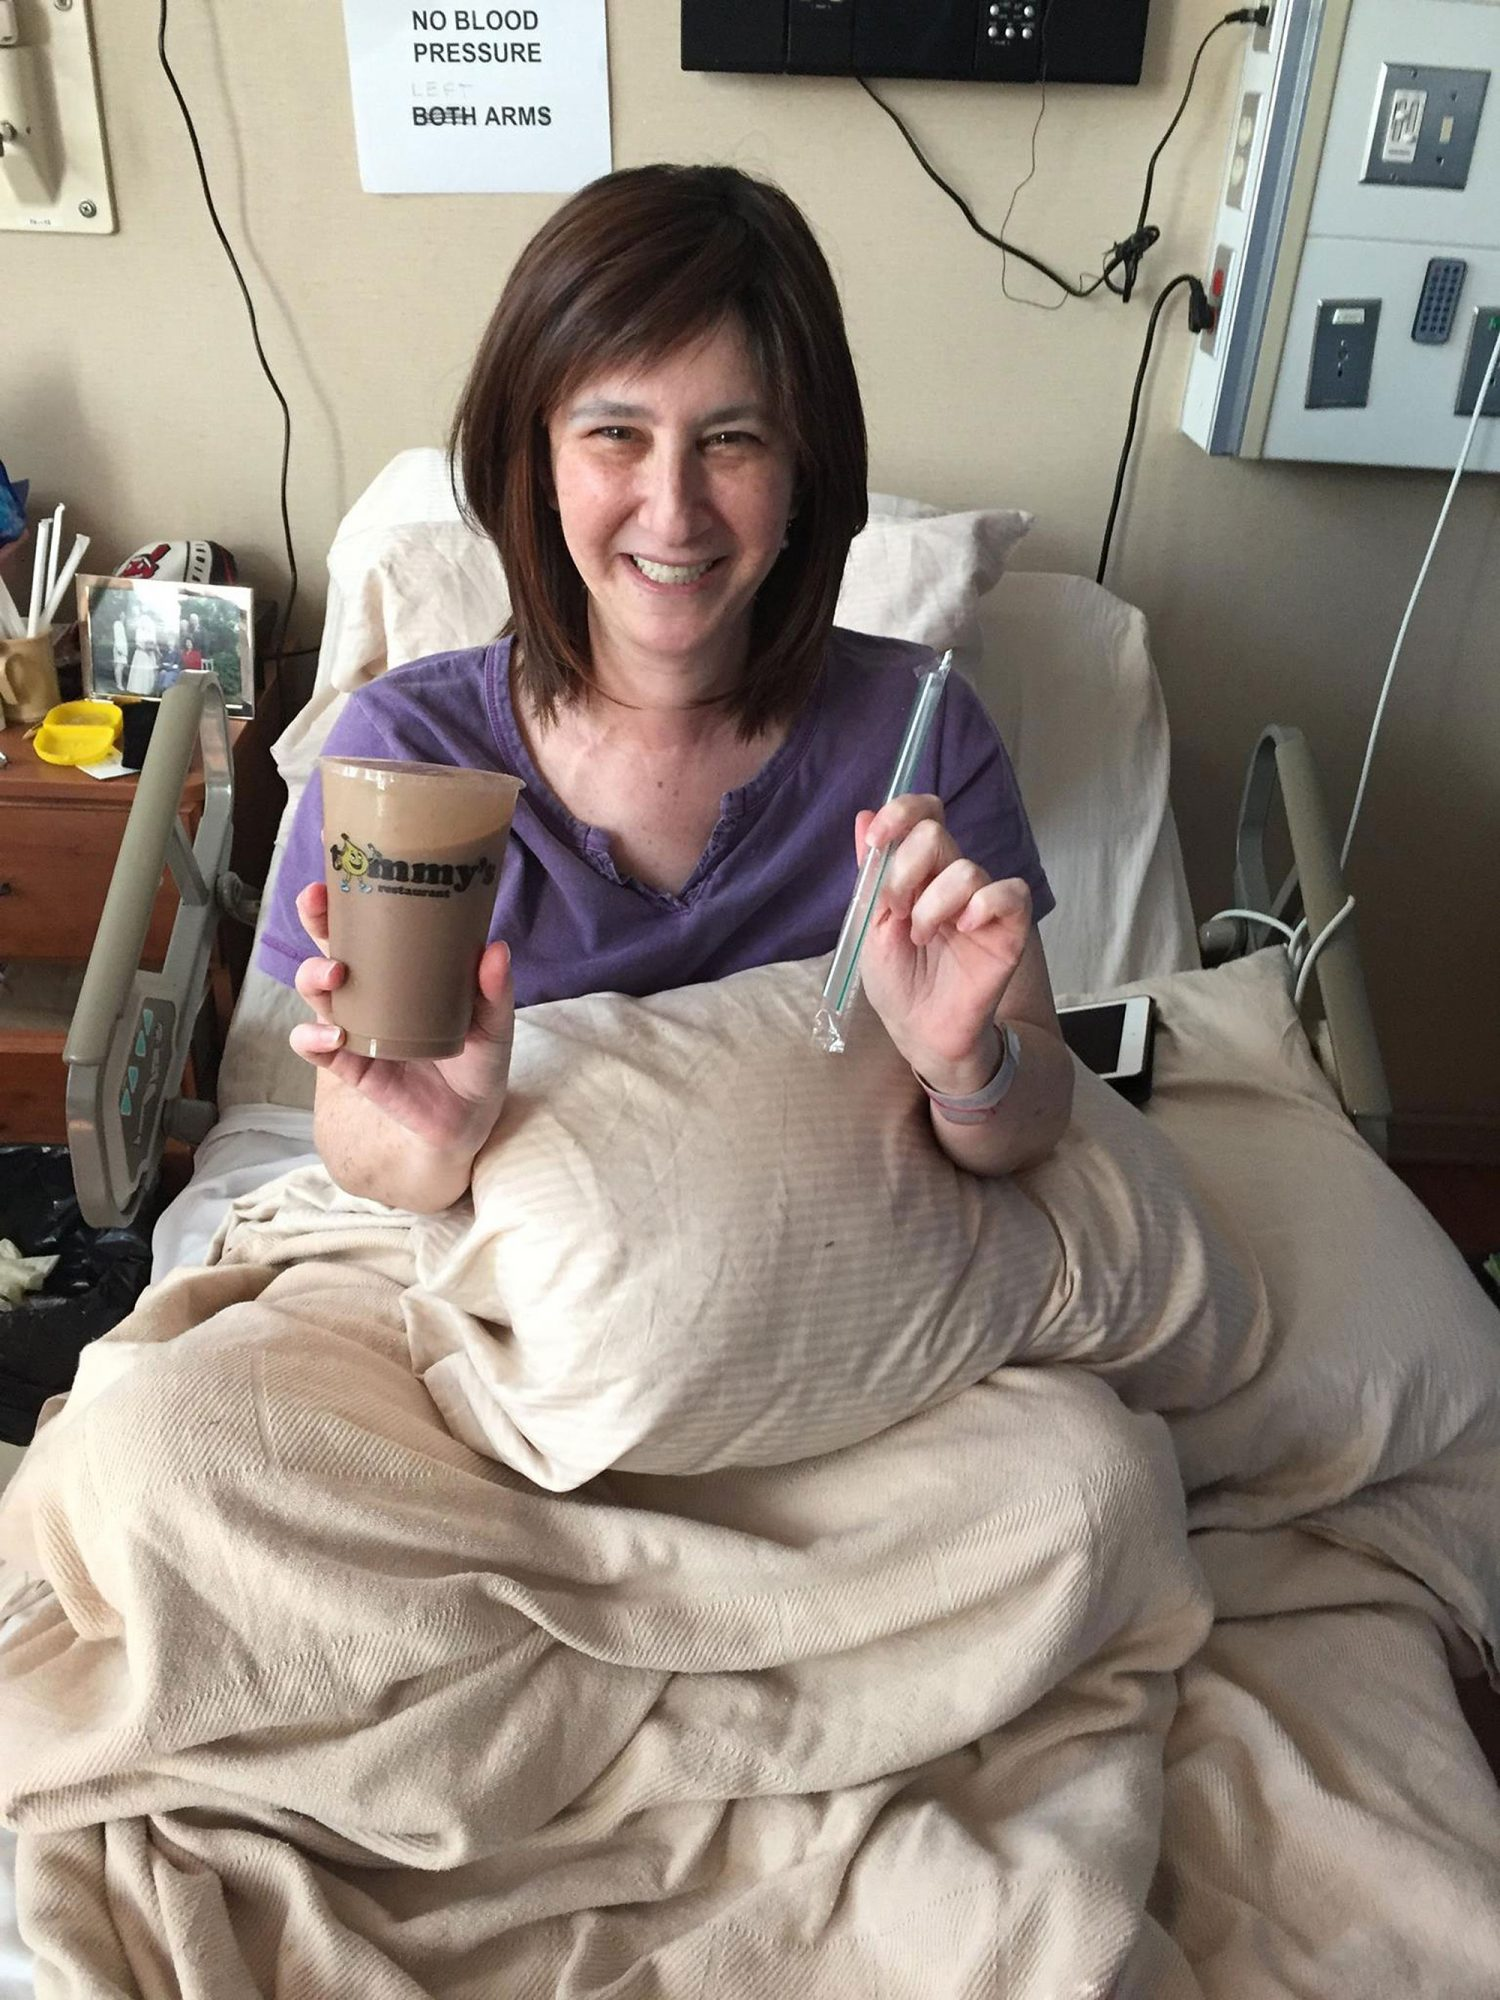 Cleveland Restaurant Sends Mocha Milkshake 375 Miles to Make Woman's Dying Wish Come True